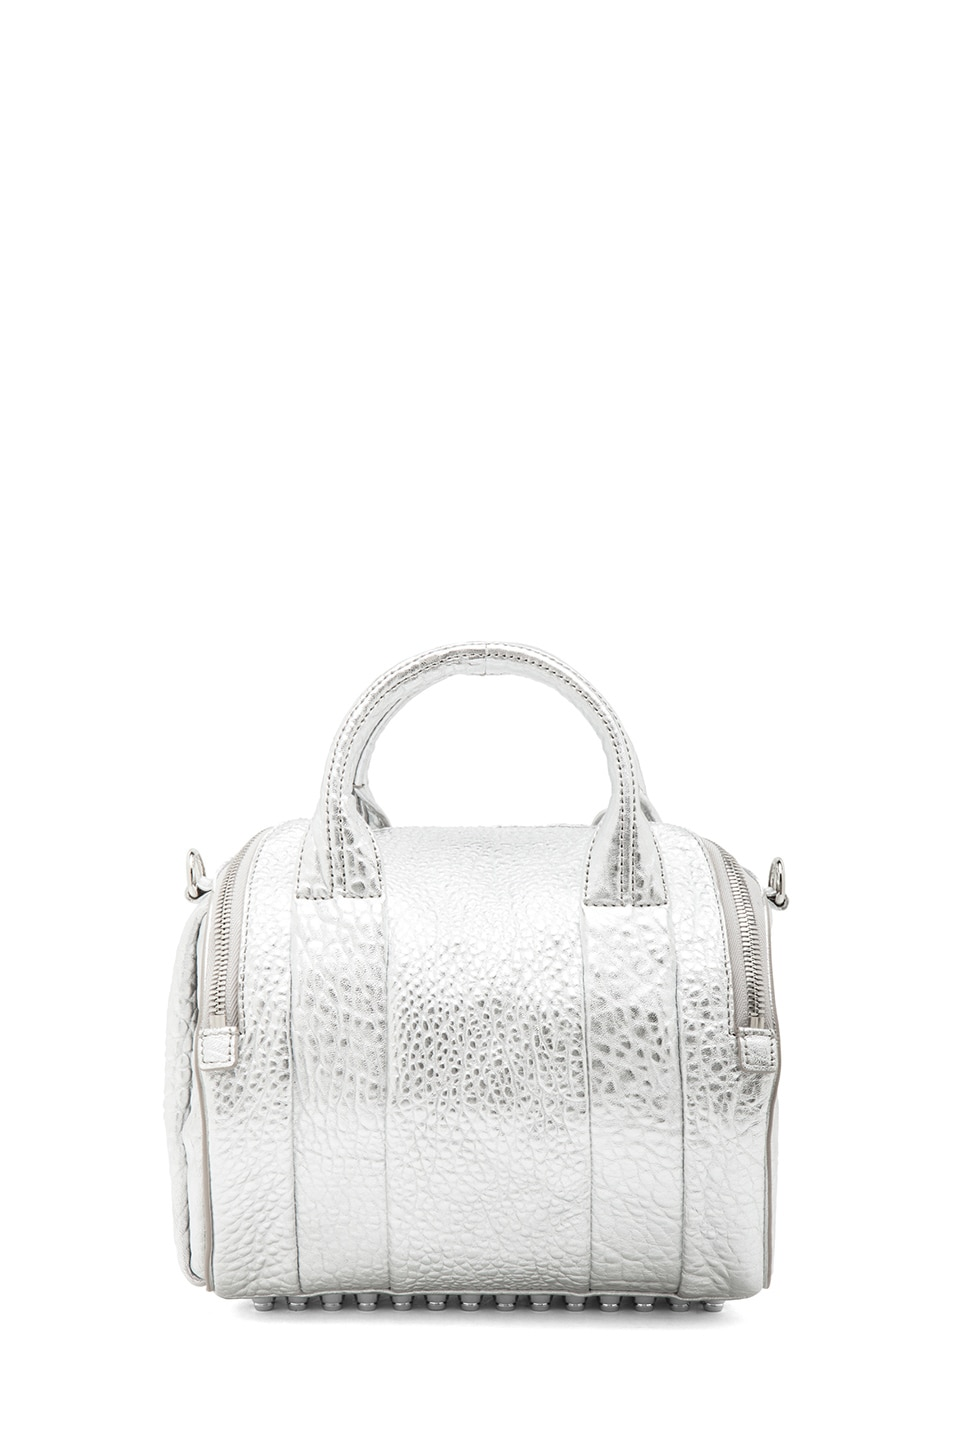 Image 2 of Alexander Wang Rockie Handbag in Rhodium